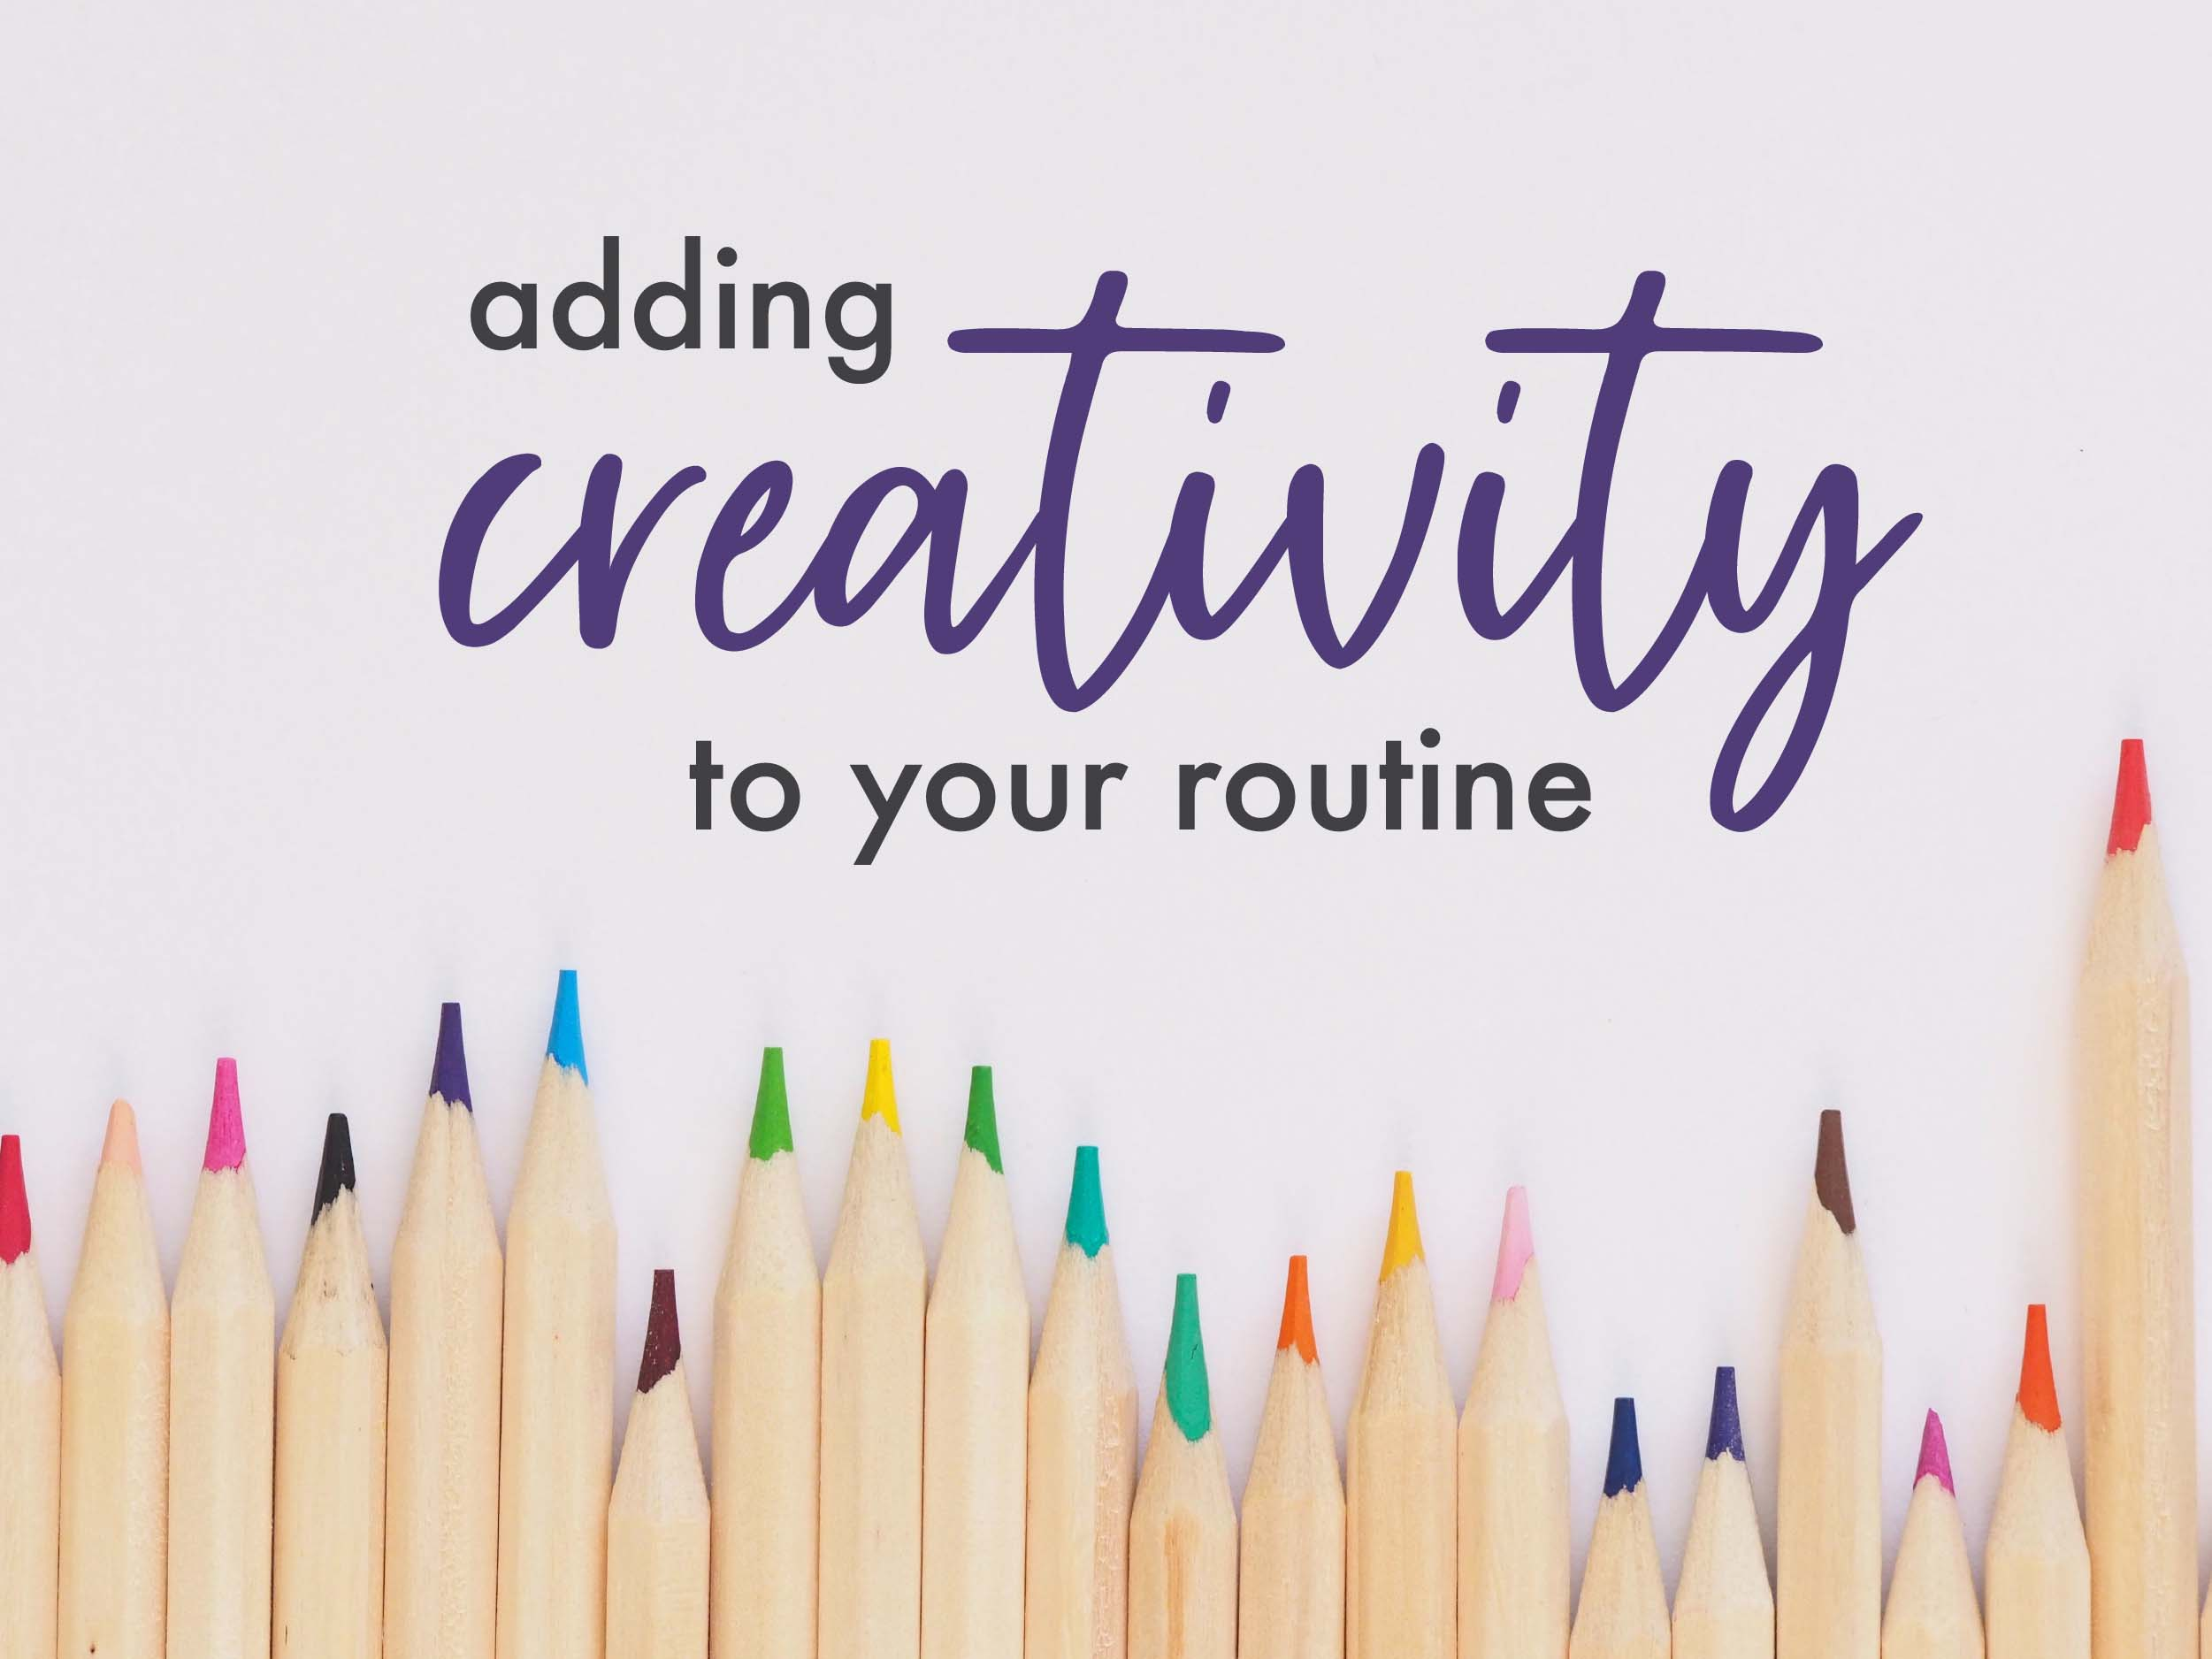 adding creativity to your routine with colored pencils underneath